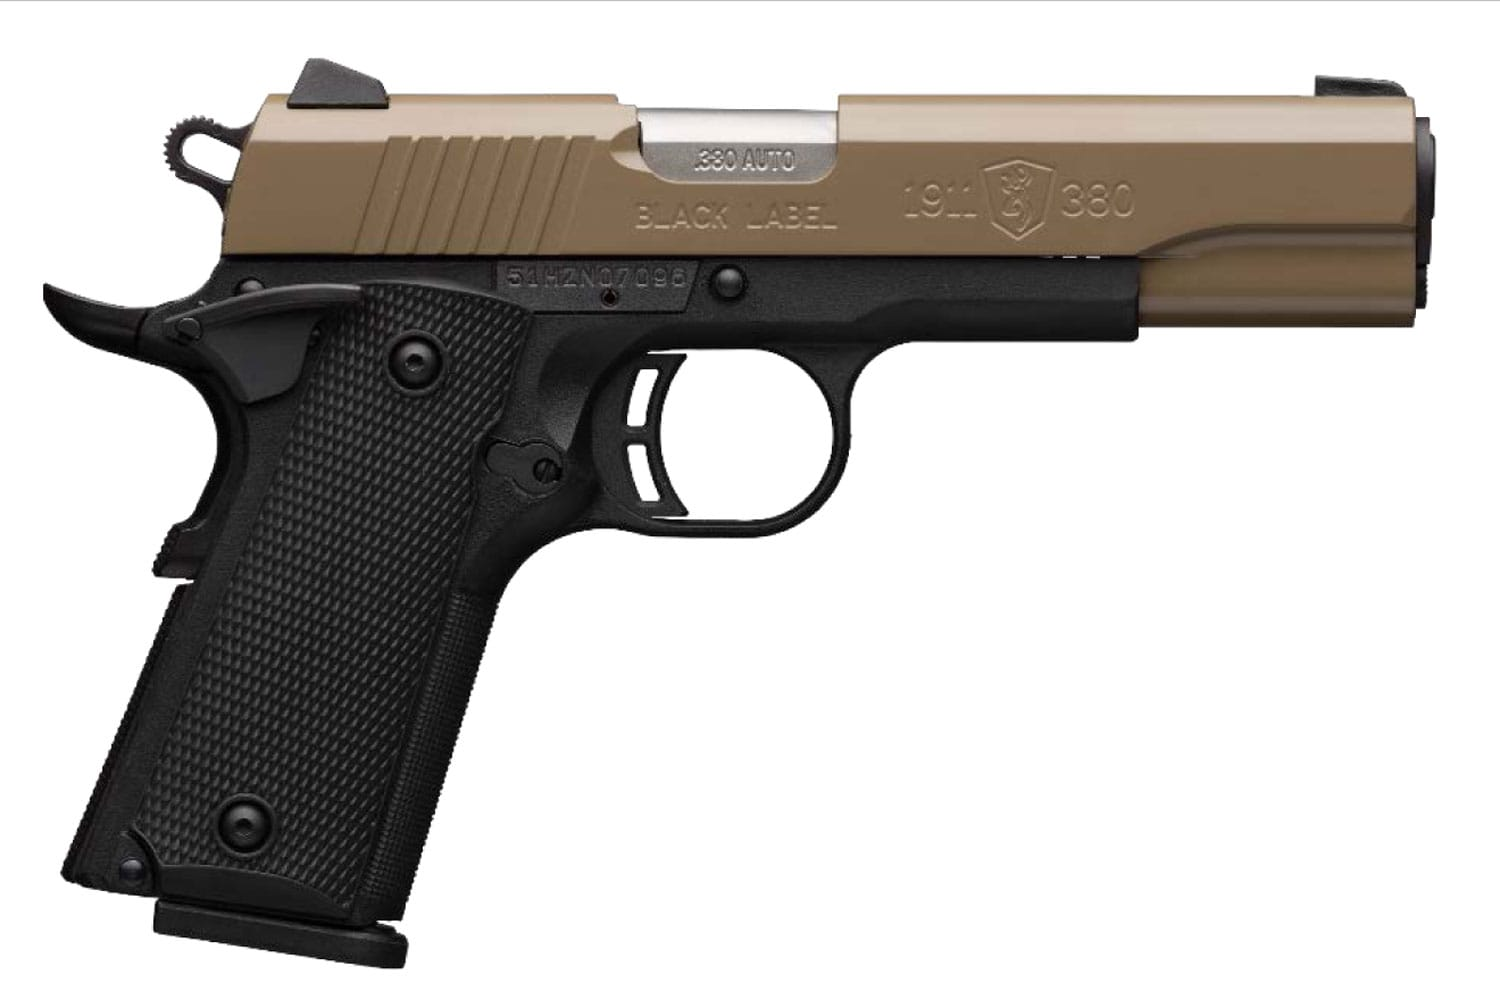 BROWNING 1911-380 COMPACT